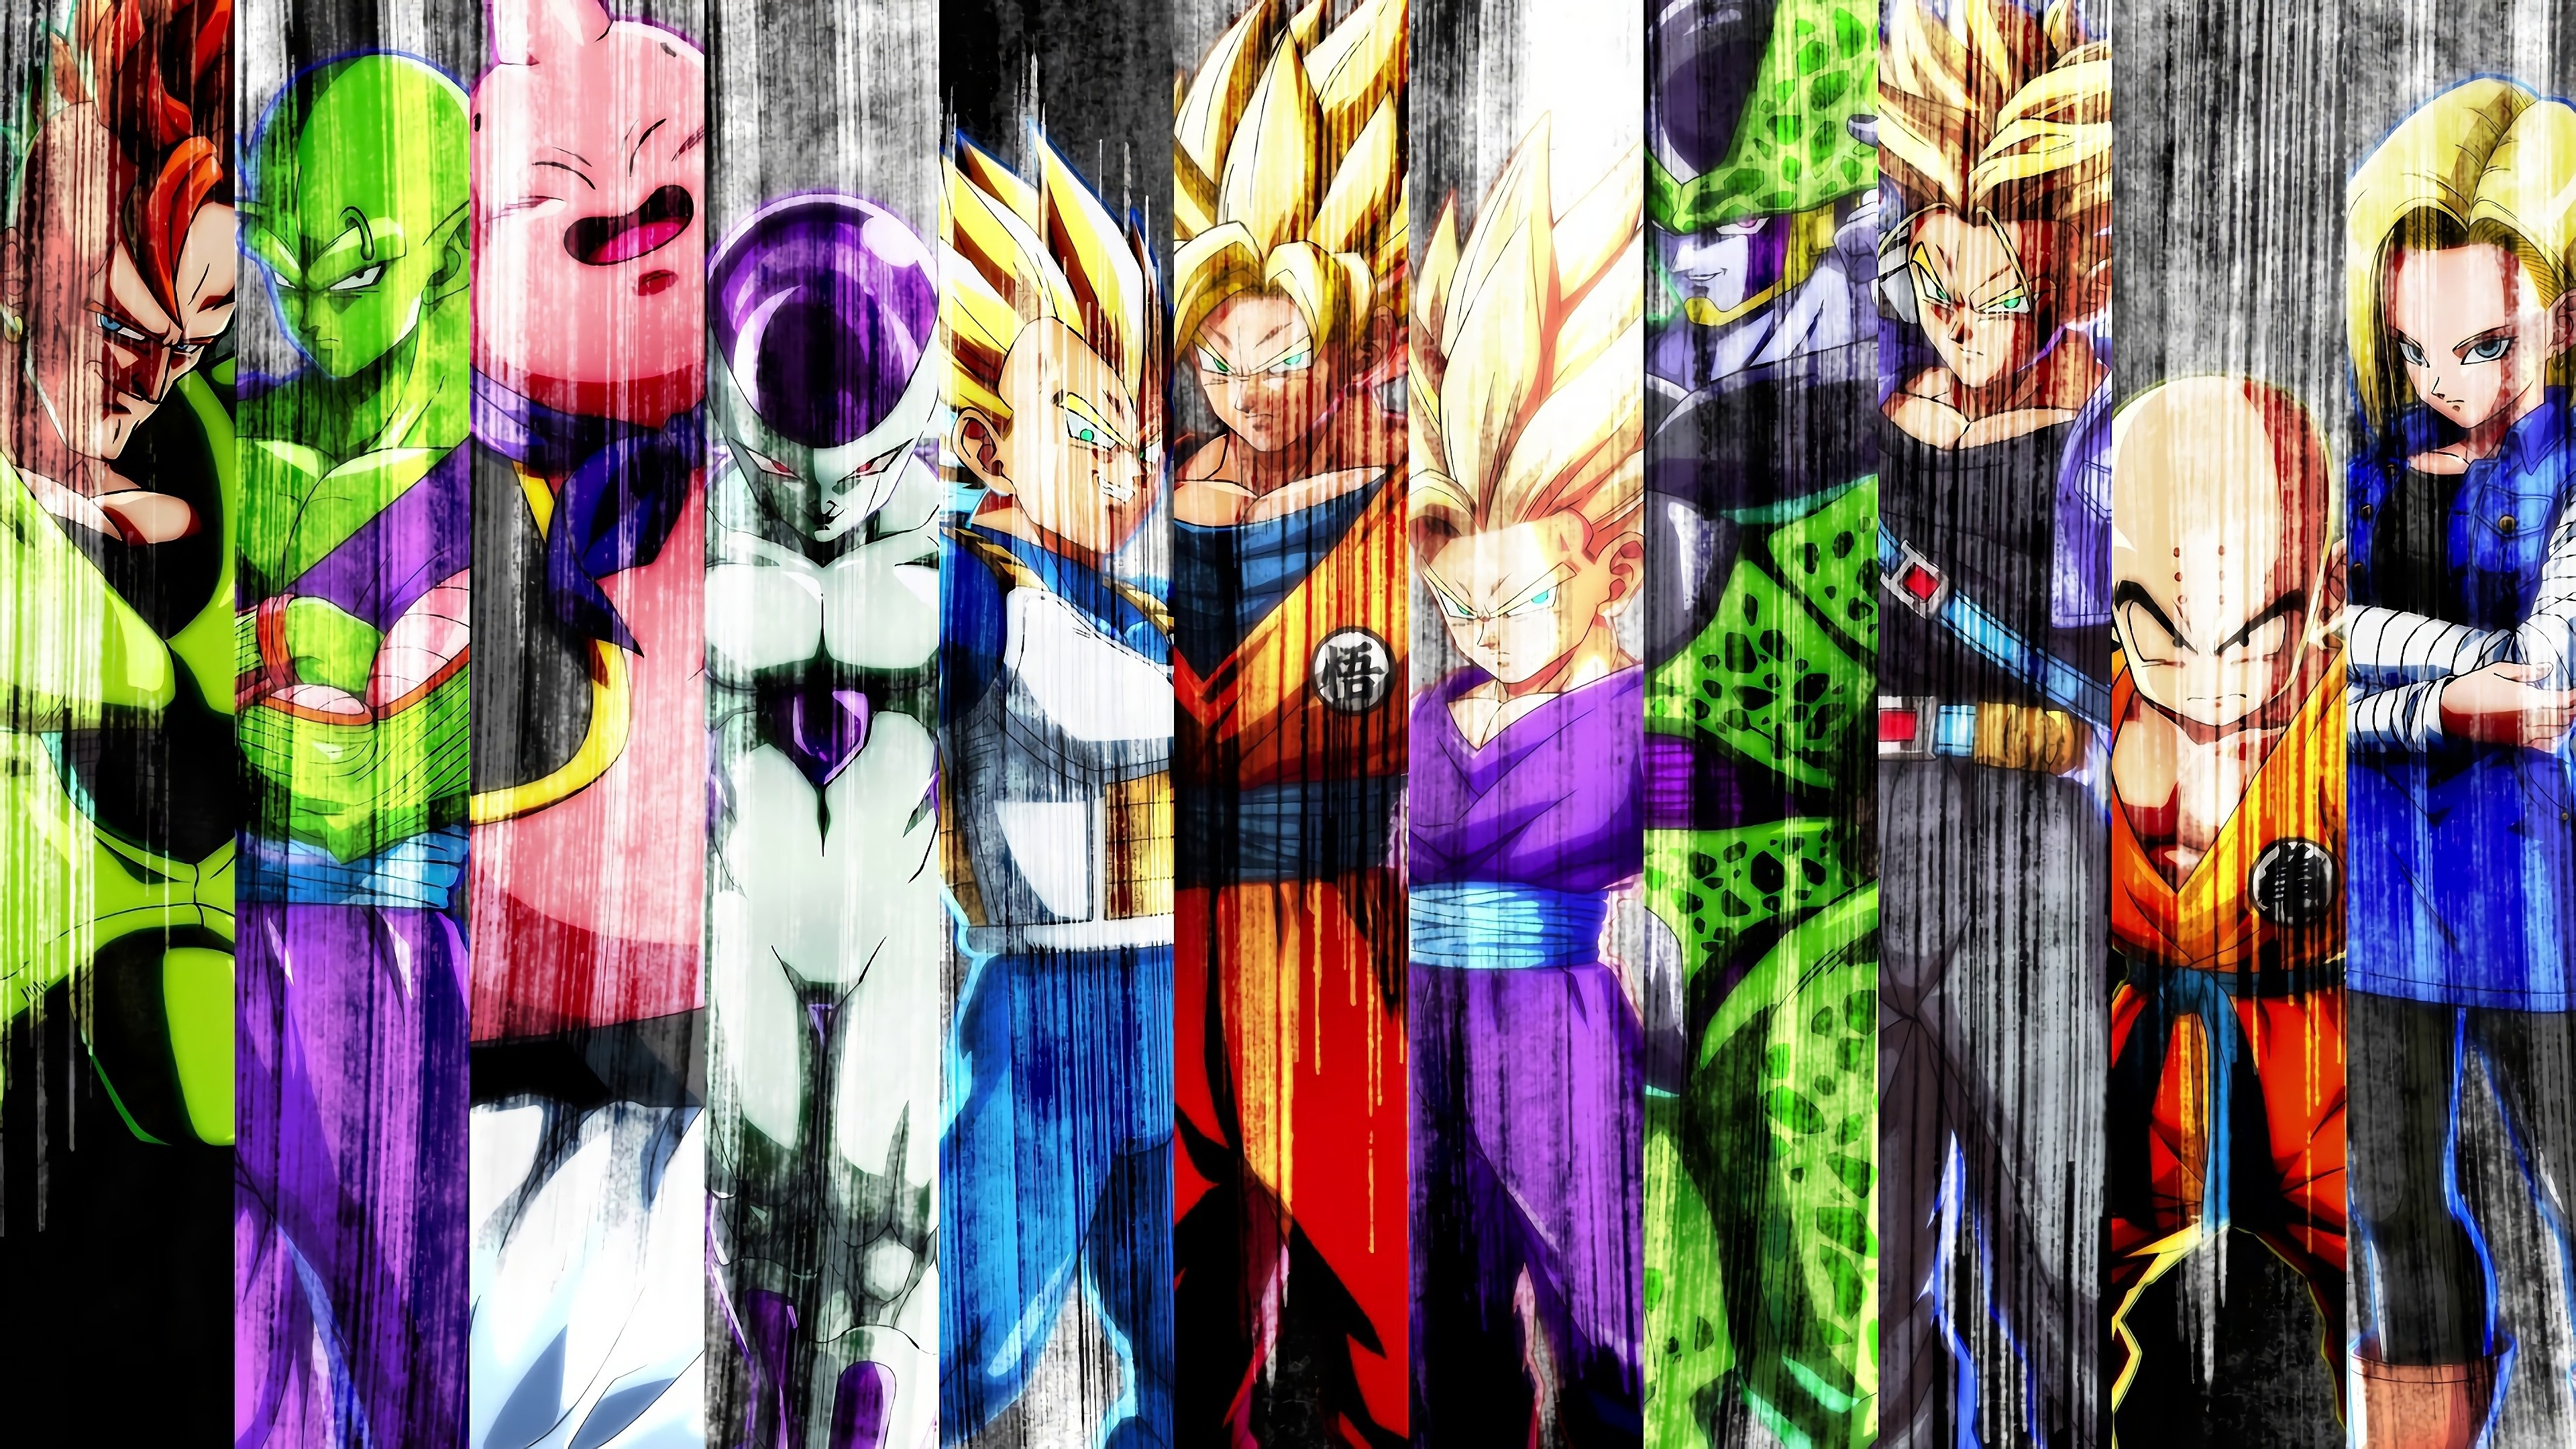 Download 3840x2160 Wallpaper All Characters Collage Dragon Ball Fighterz 4k Uhd 16 9 Widescreen 3840x2160 Hd Image Background 4691